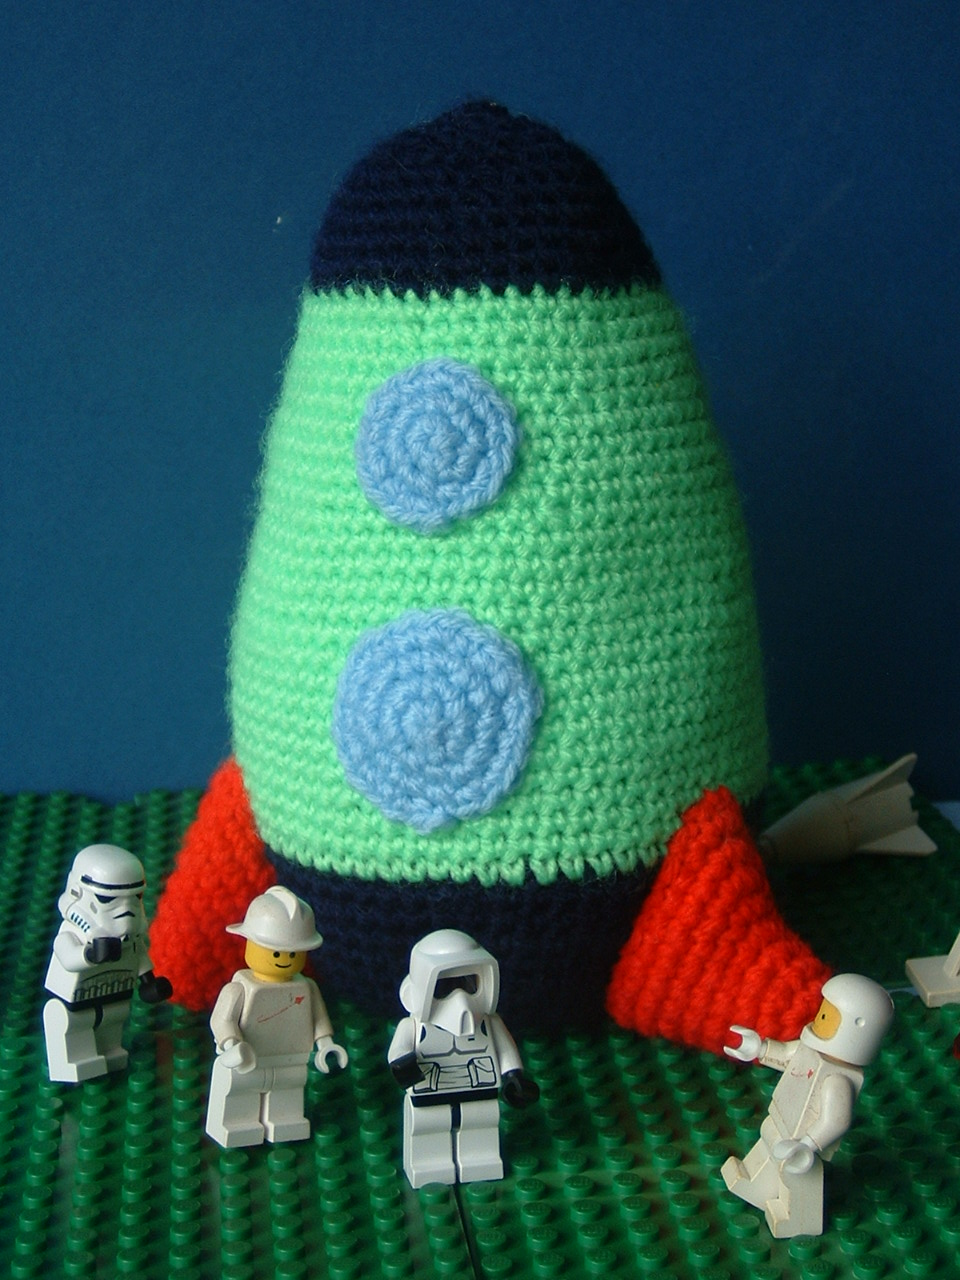 Moon Amigurumi Pattern Free : 2000 Free Amigurumi Patterns: Fly me to the moon - Rocket ...